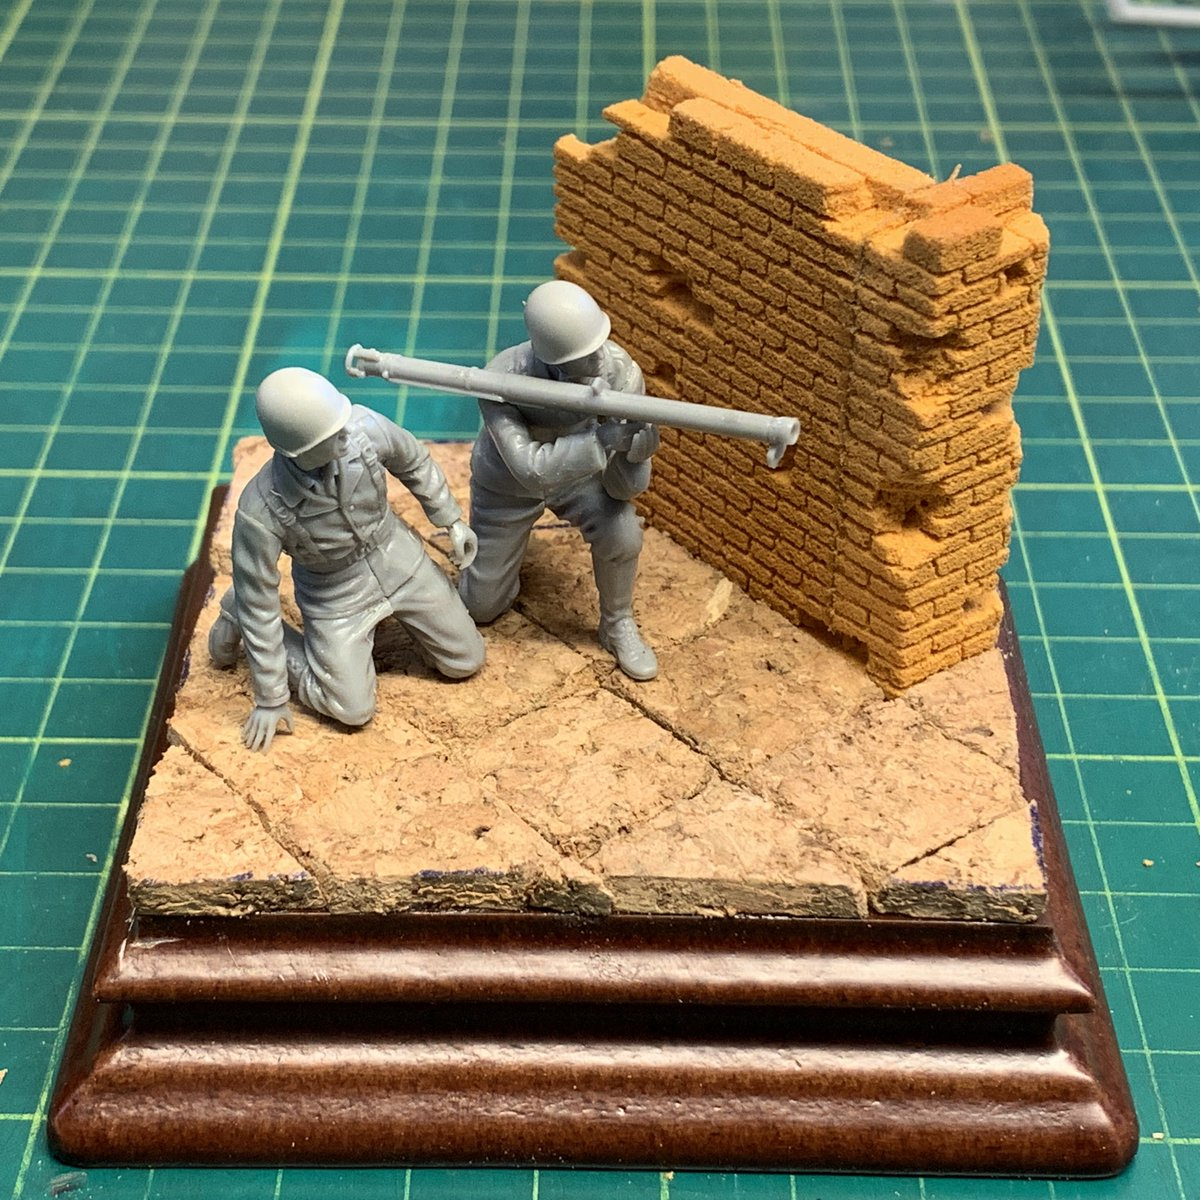 Trying to develop an idea... Any thoughts? #scalemodel #miniatures pic.twitter.com/pVKHlVuFmQ